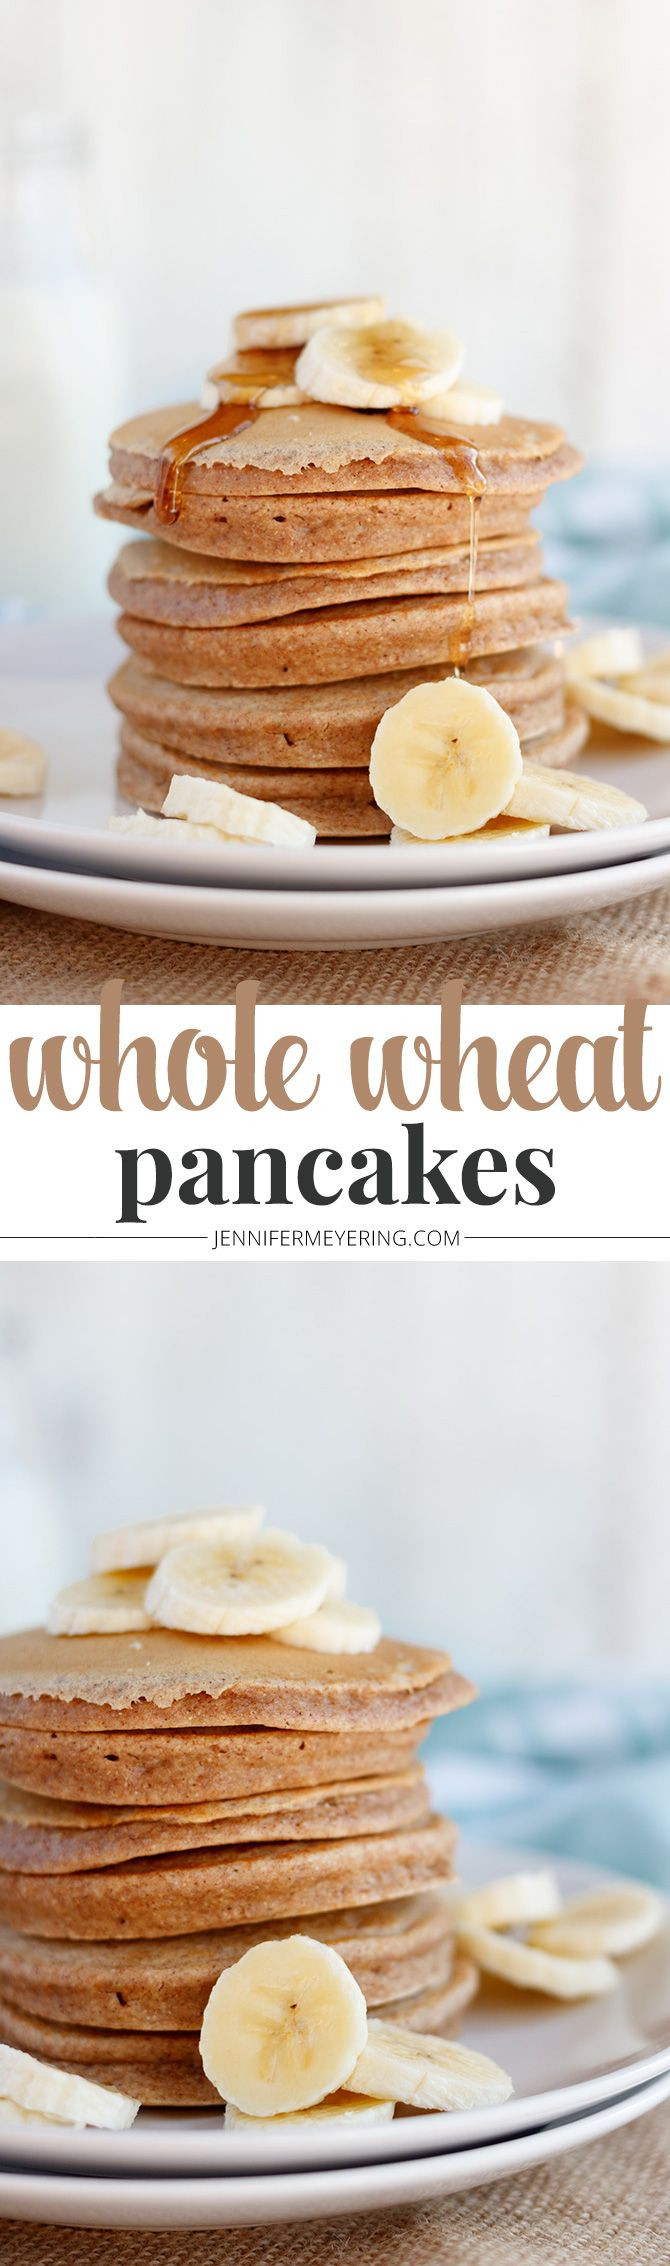 Whole Wheat Pancakes - JenniferMeyering.com